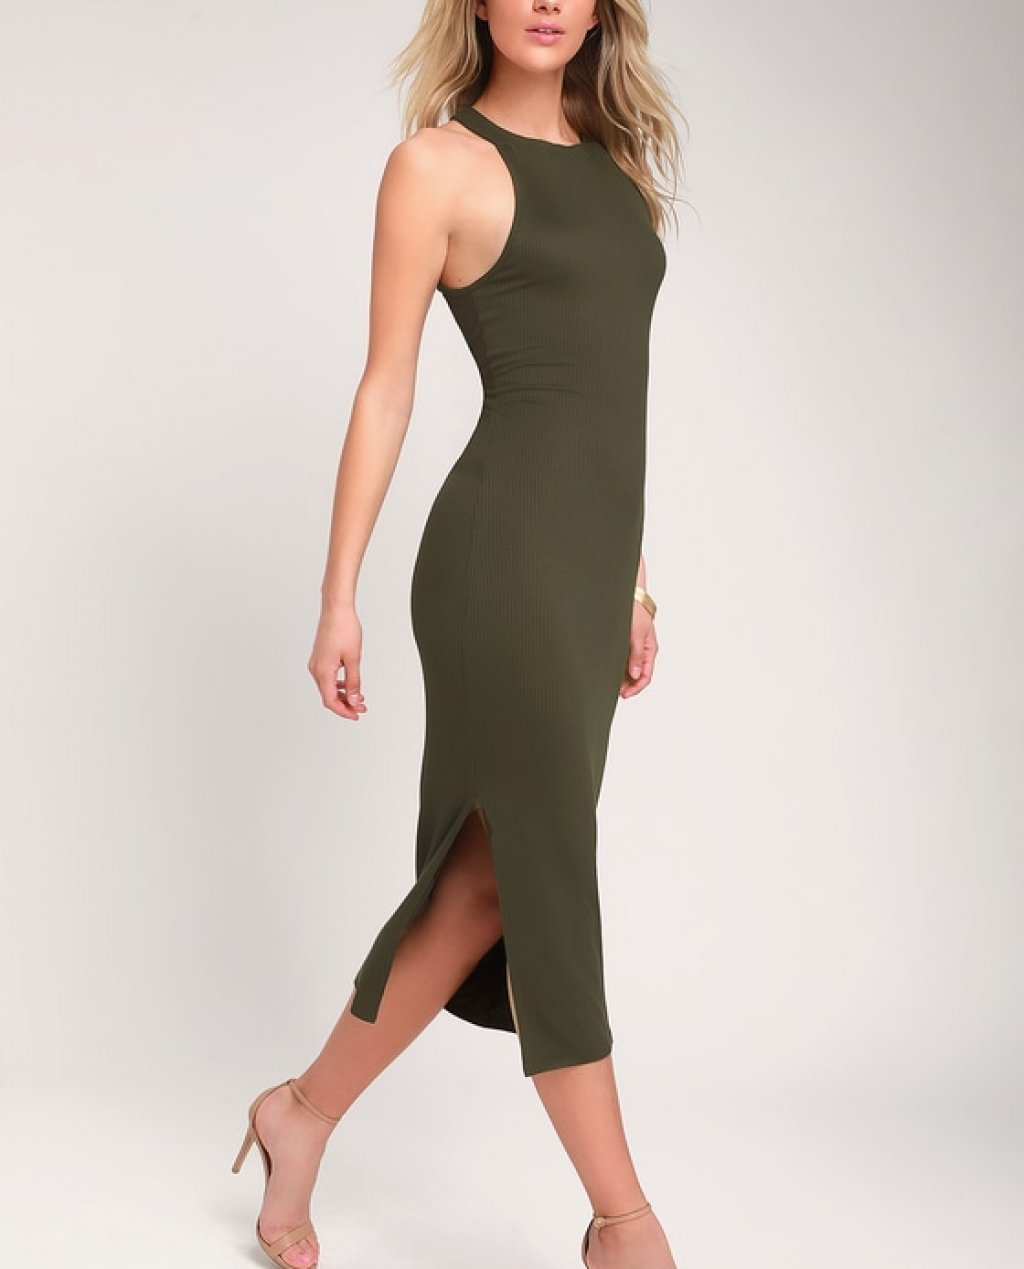 Want It All Olive Green Ribbed Bodycon Midi Dress